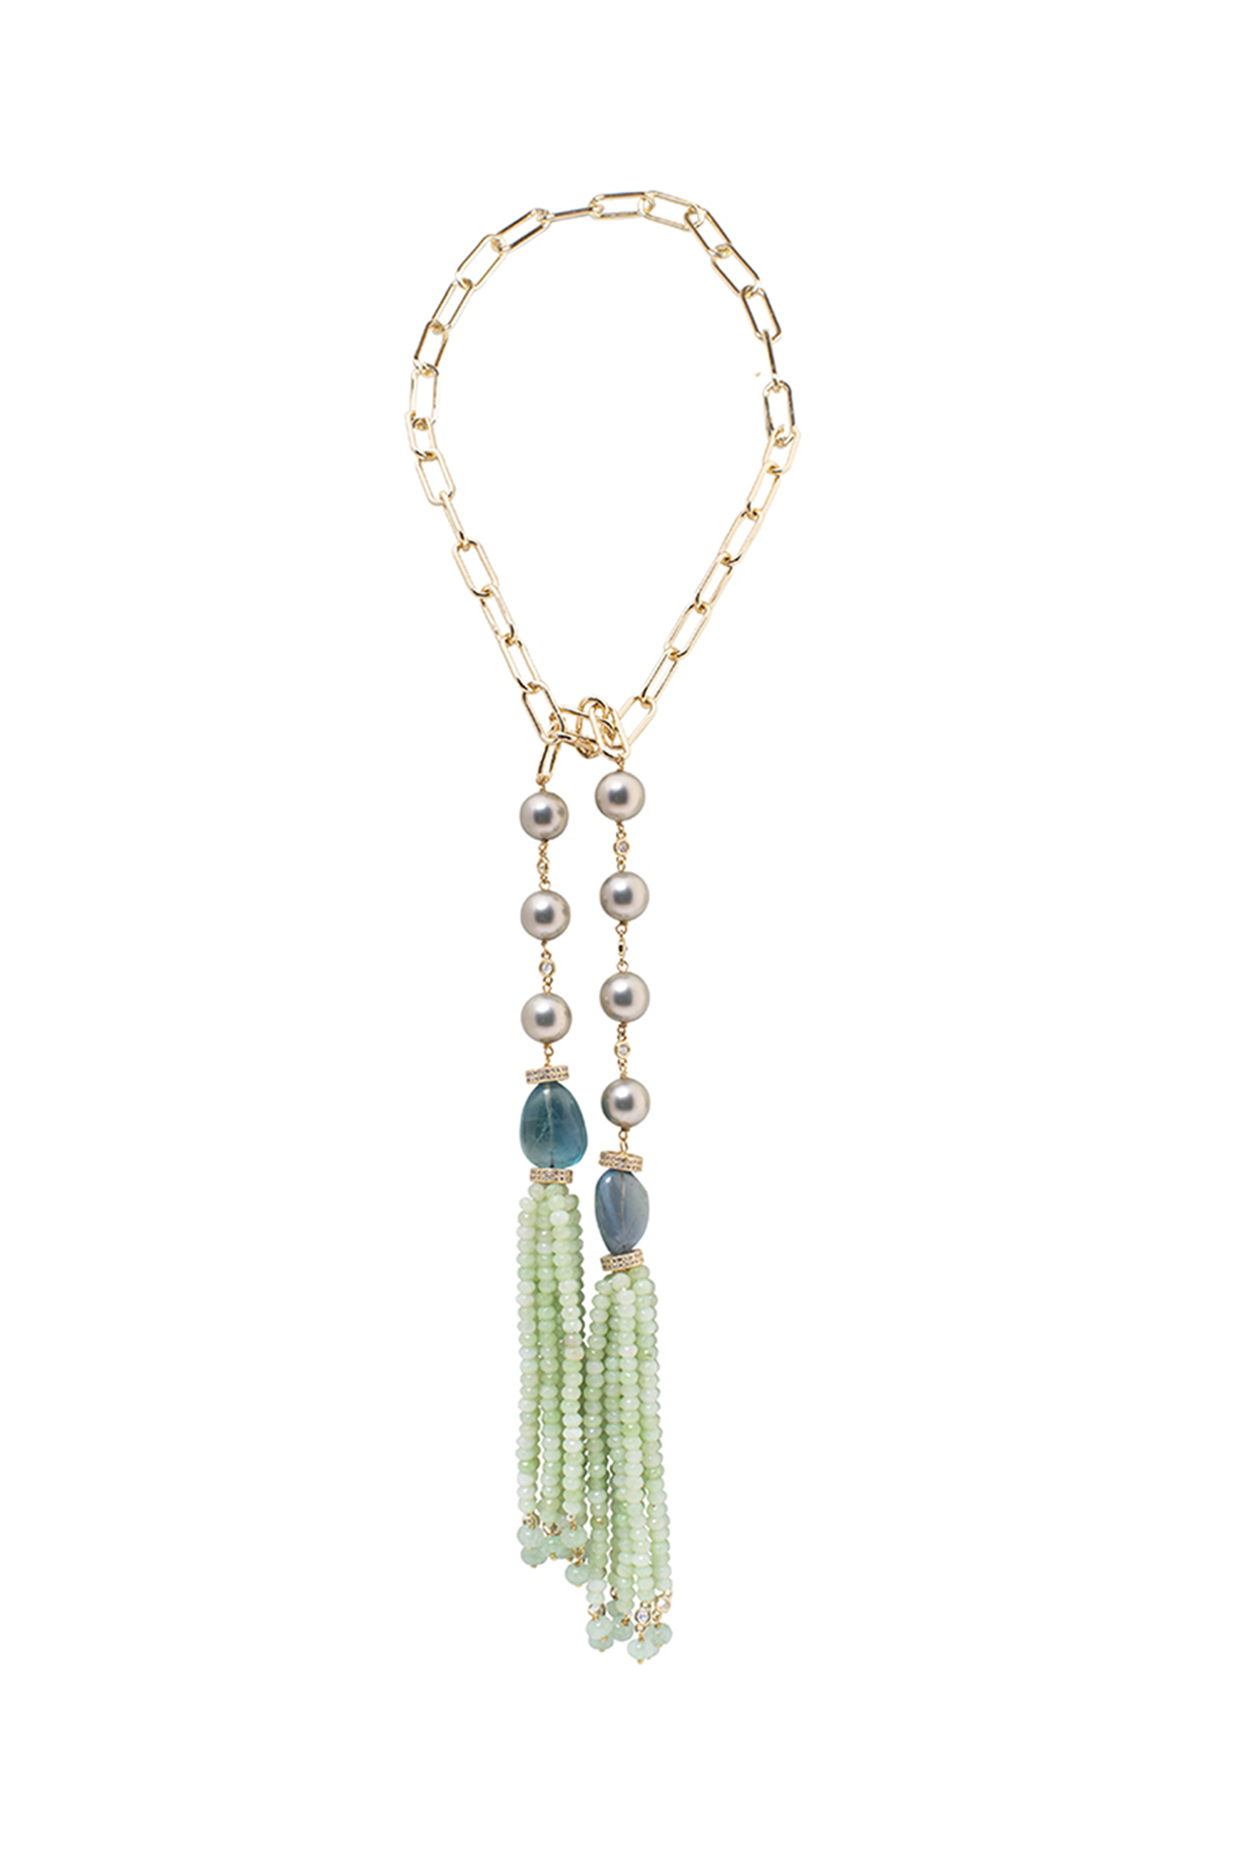 Gold Finish Agate Beaded Necklace by Joules By Radhika